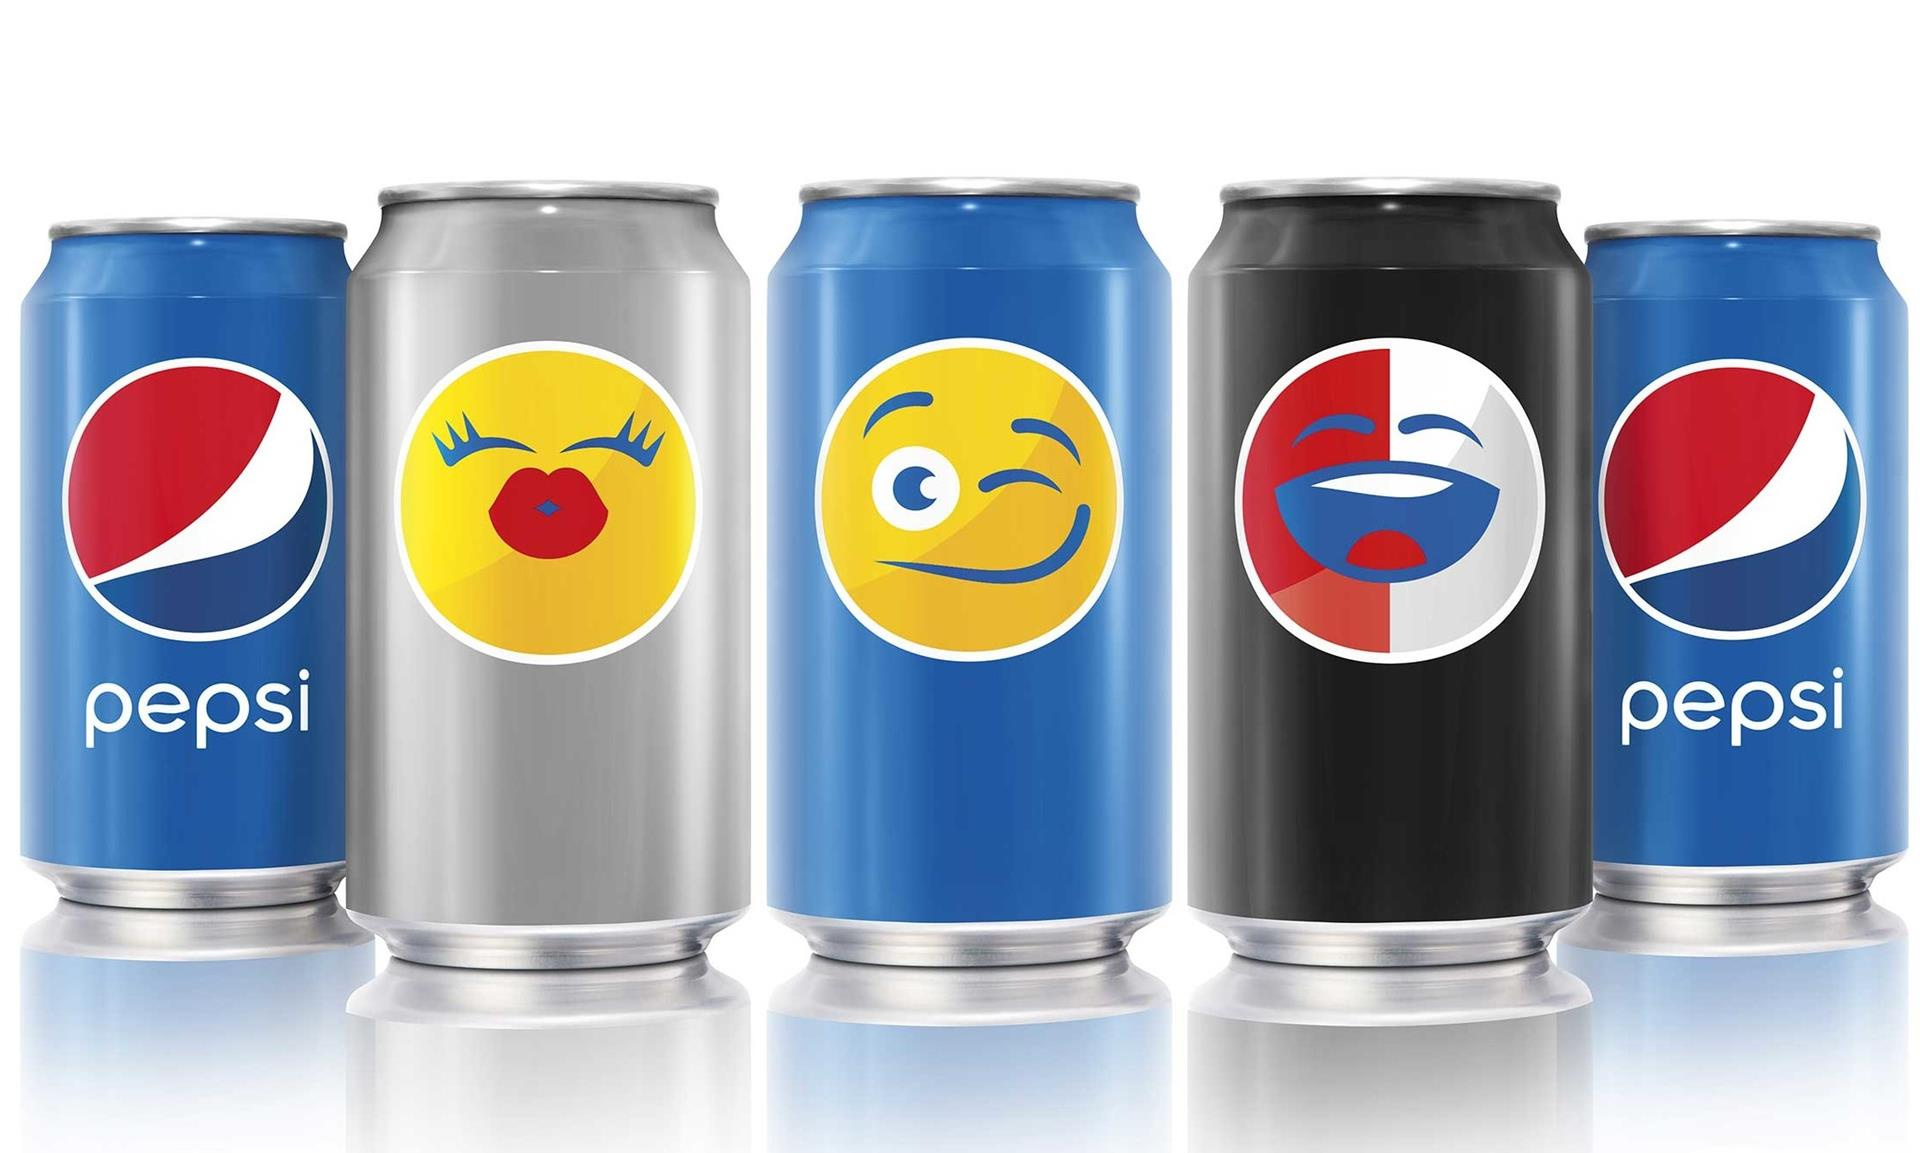 pepsi coke india Yadav isn't reneging on his deal with coke pepsi became a common synonym for cola in india's most widely spoken language after having the market to itself in the early 1990s.